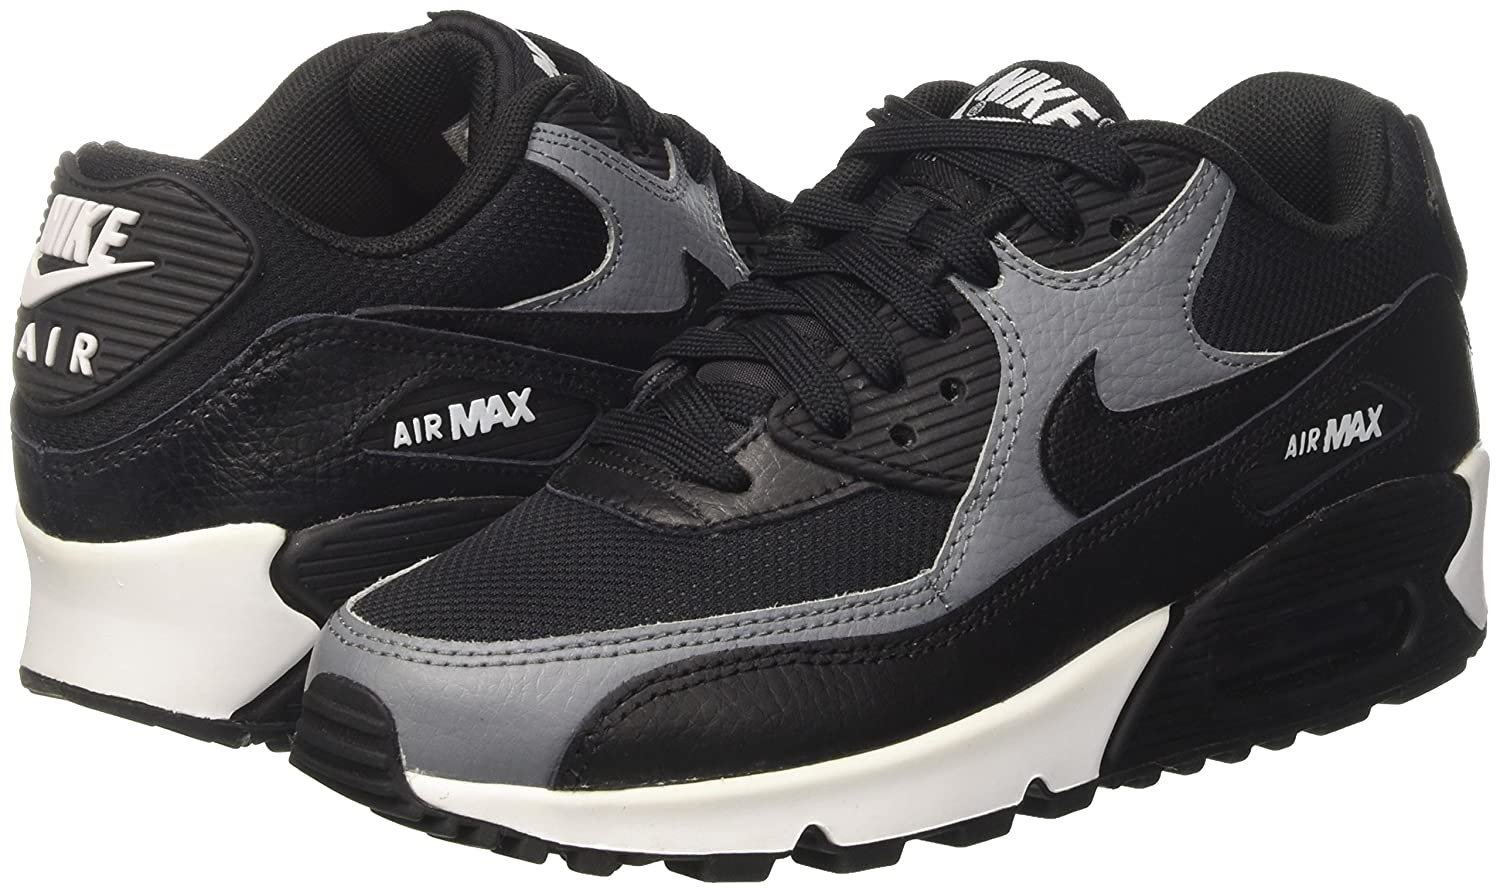 Nike 325213 037 : Women's Air Max 90 BlackBlackCool Grey